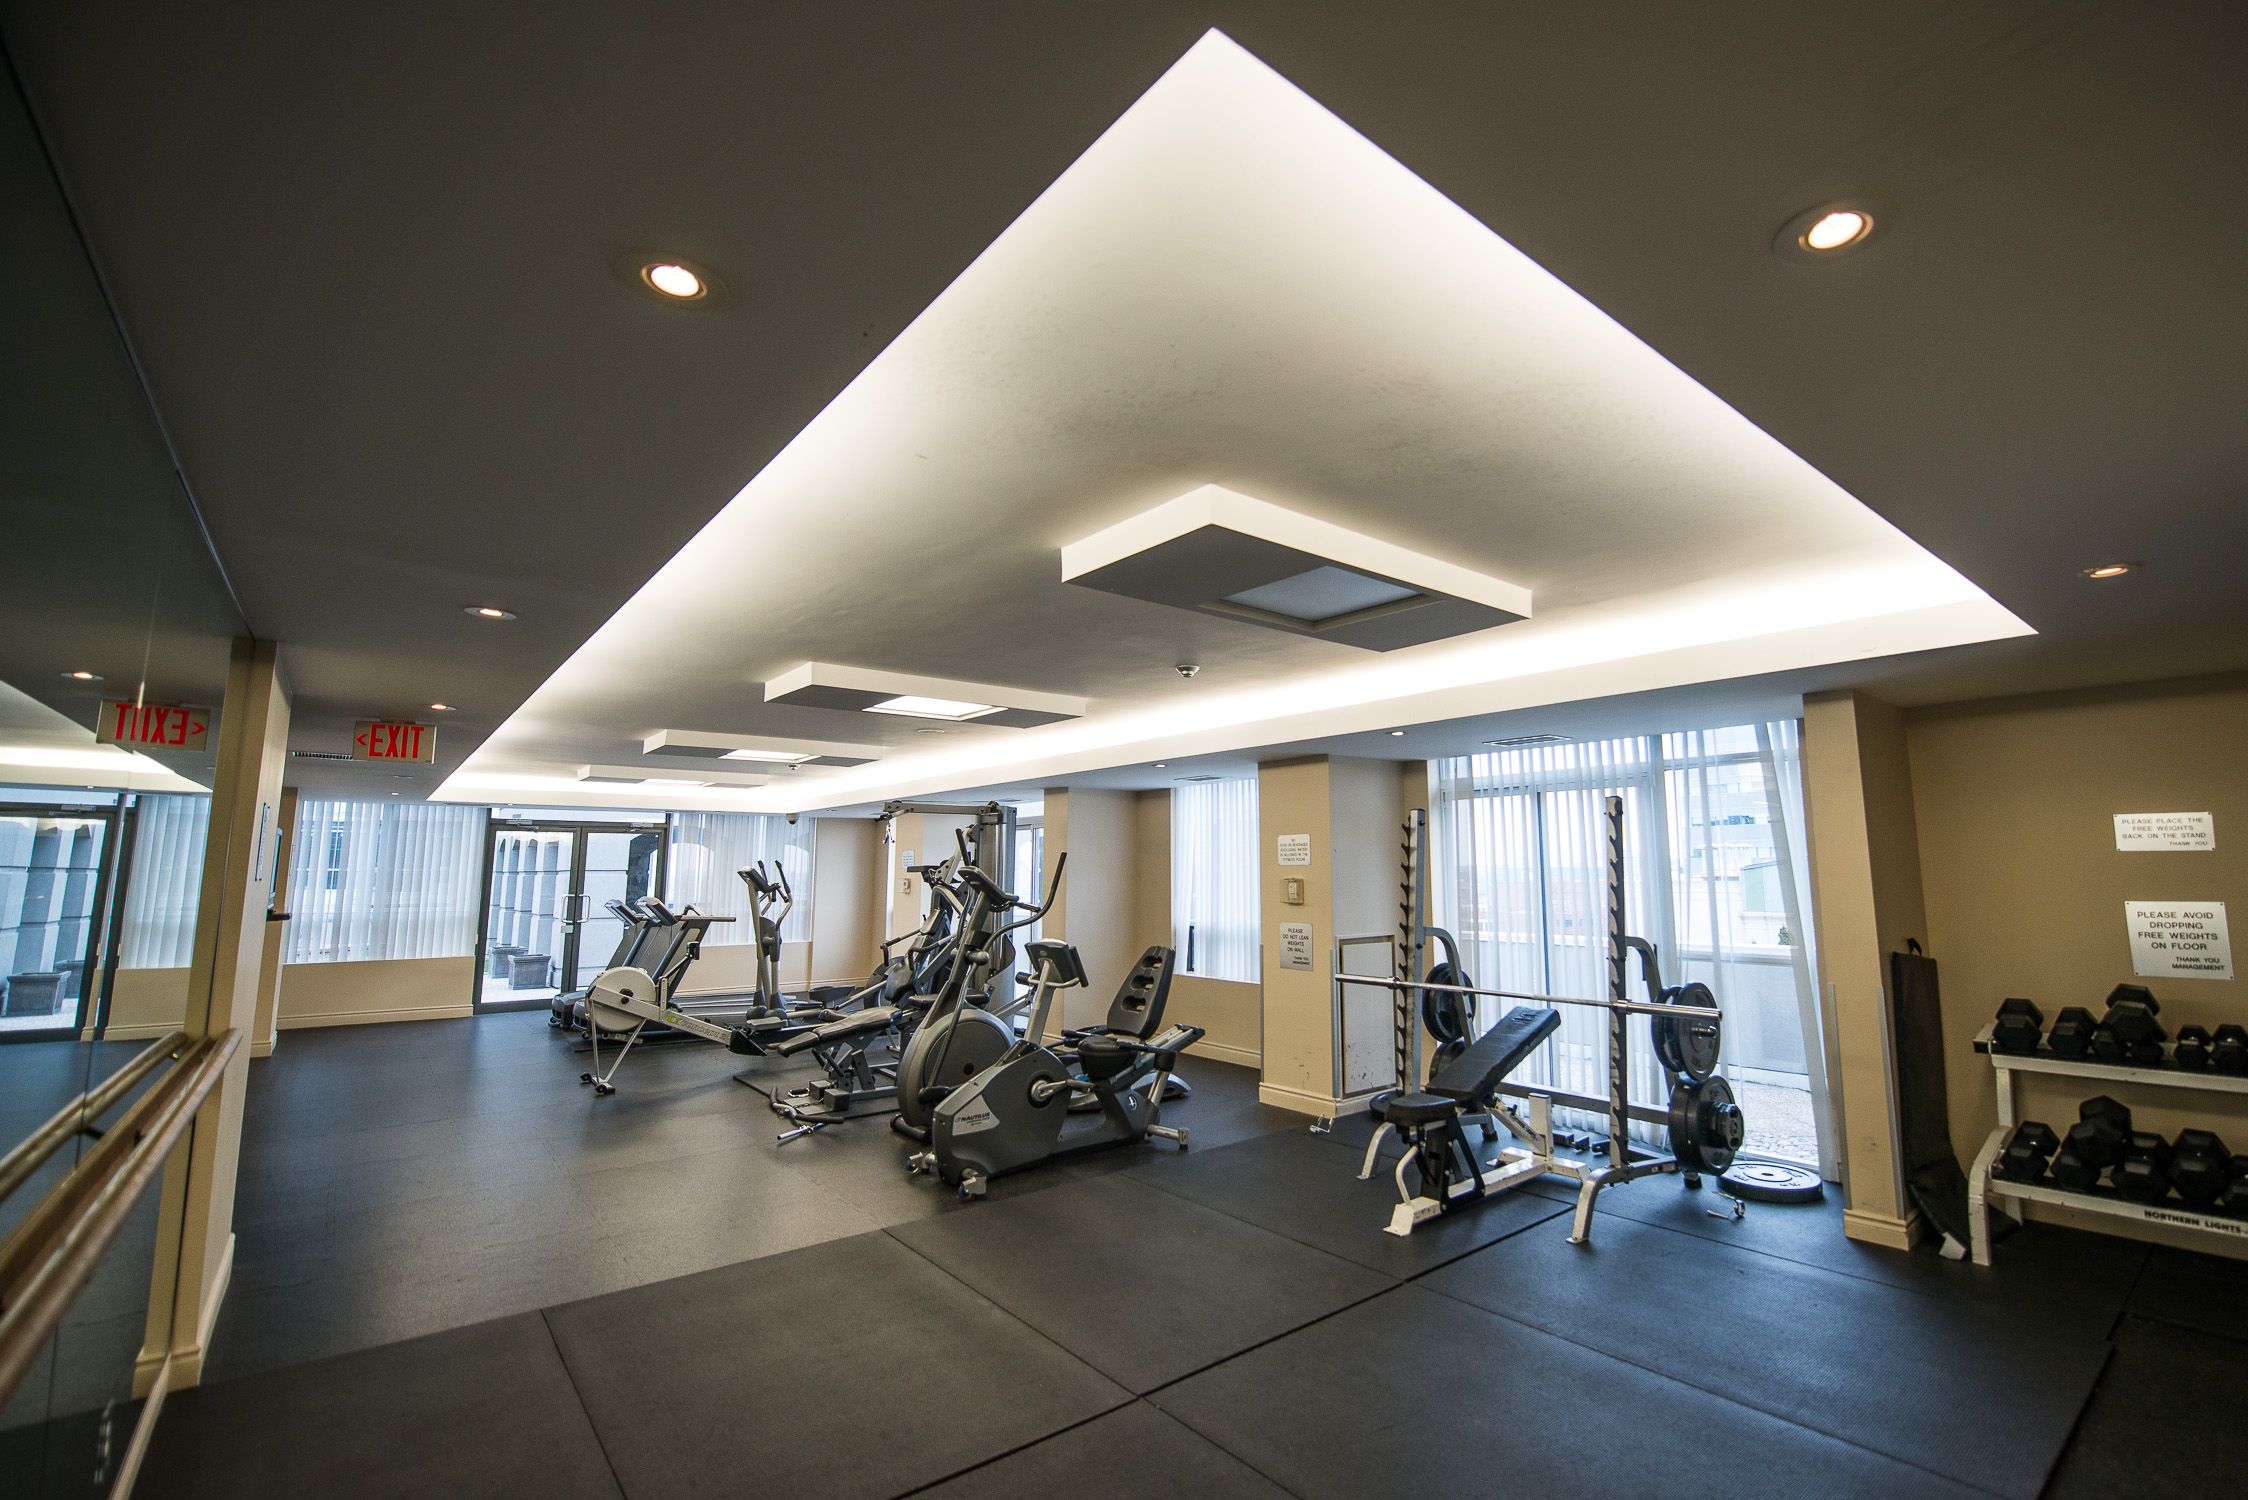 serviced apartments toronto University Plaza fitness centre